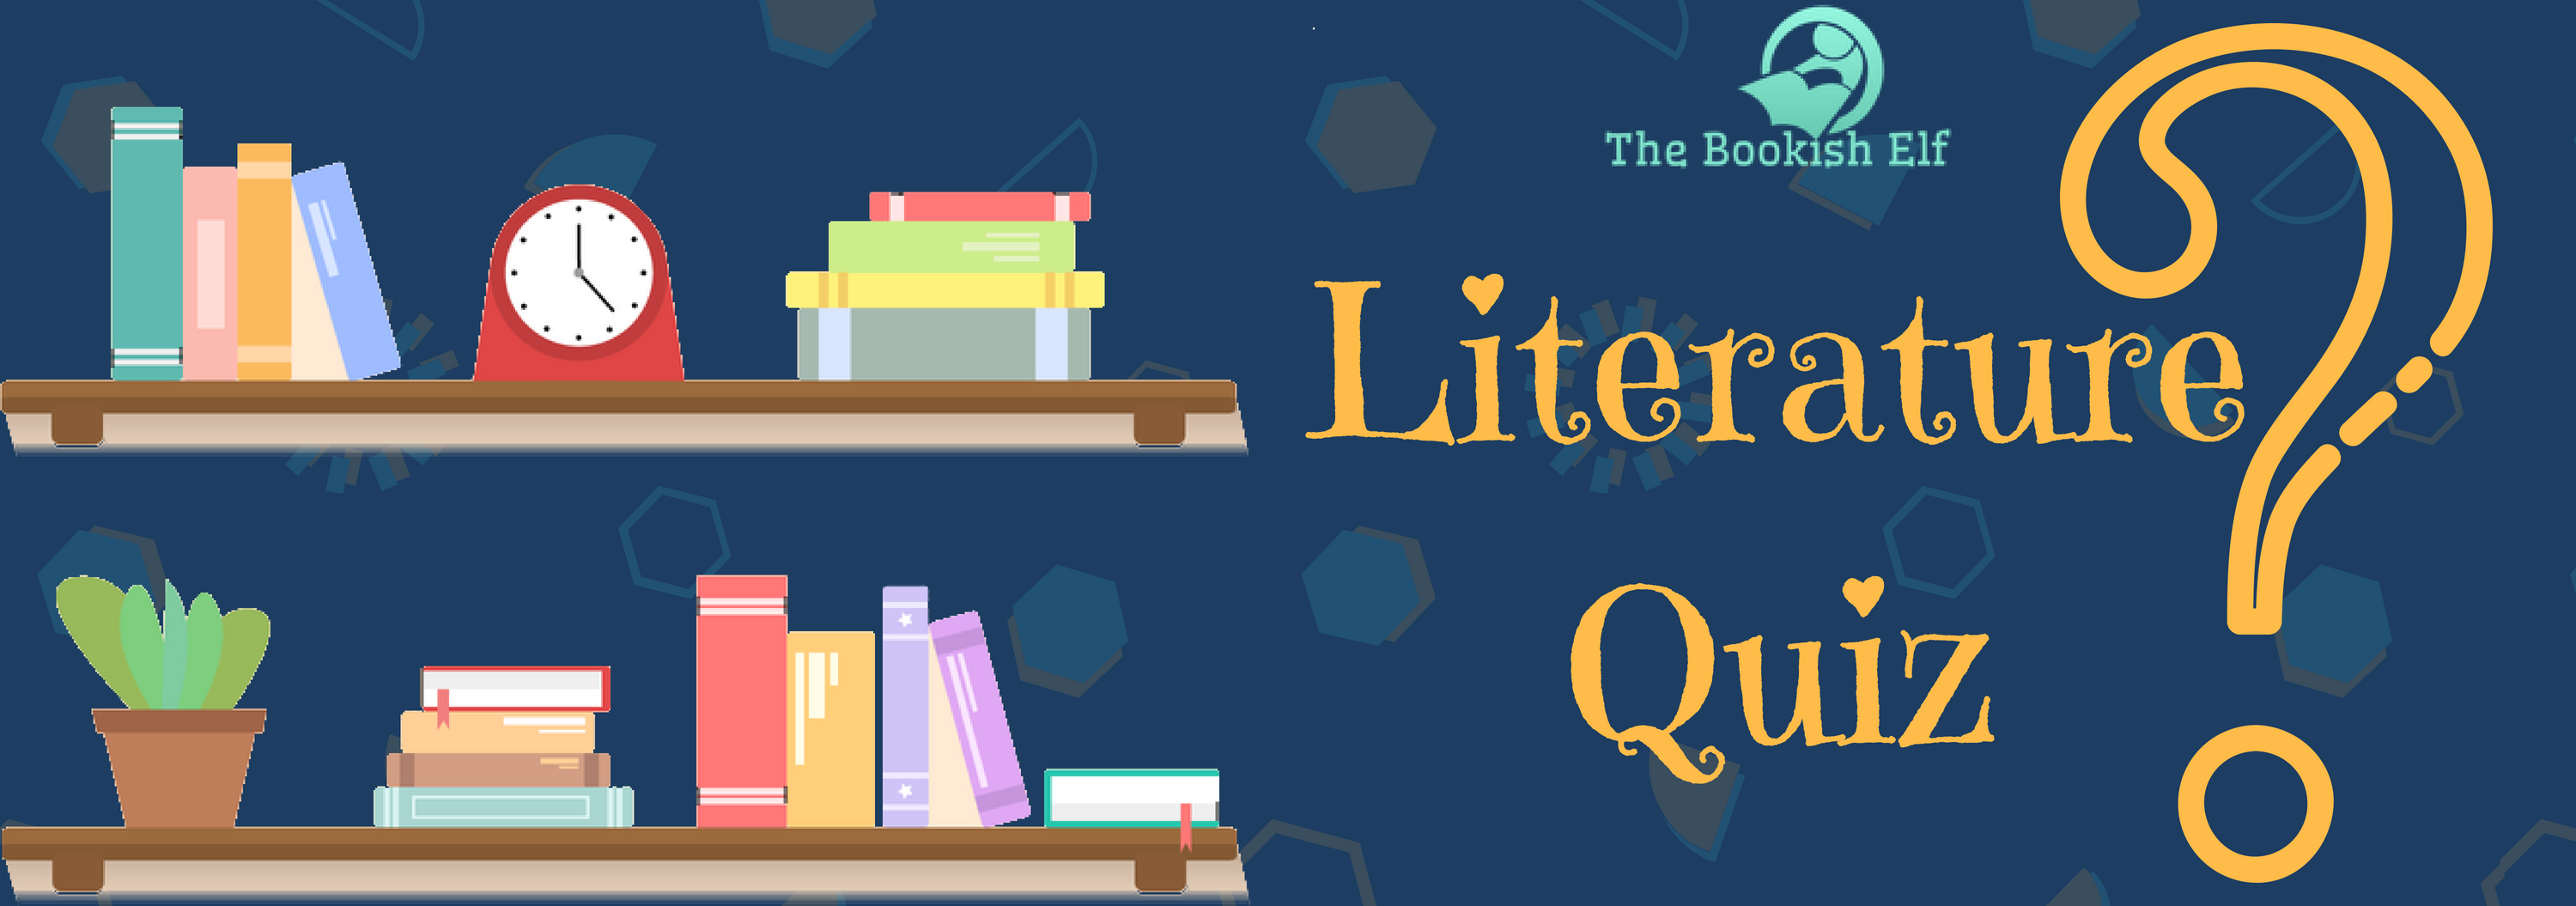 Literature Quiz | The Bookish Elf